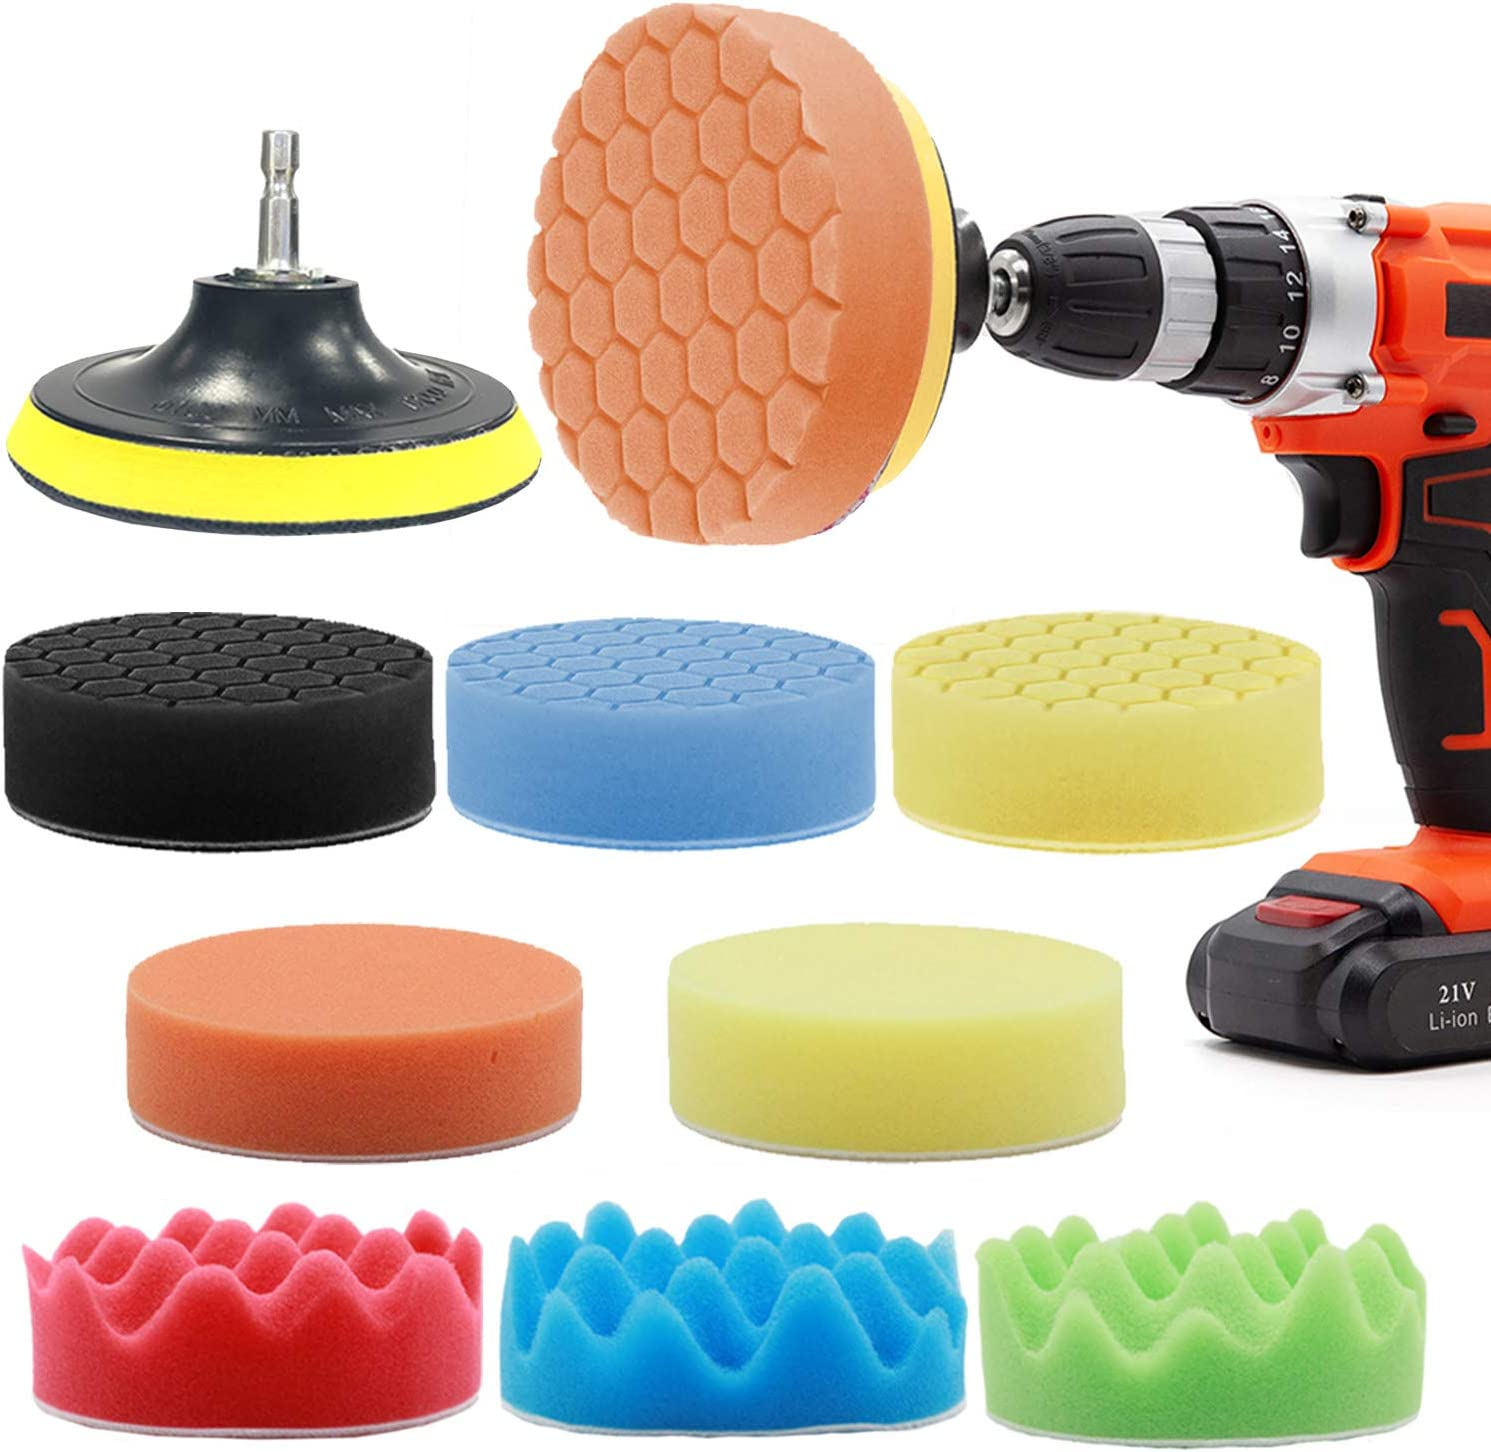 GOH DODD Polishing Pads, 11 Pieces 4 Inch Buffing Sponge Pads with Backing Plate and Drill Adapter for Car Sanding, Polishing, Waxing